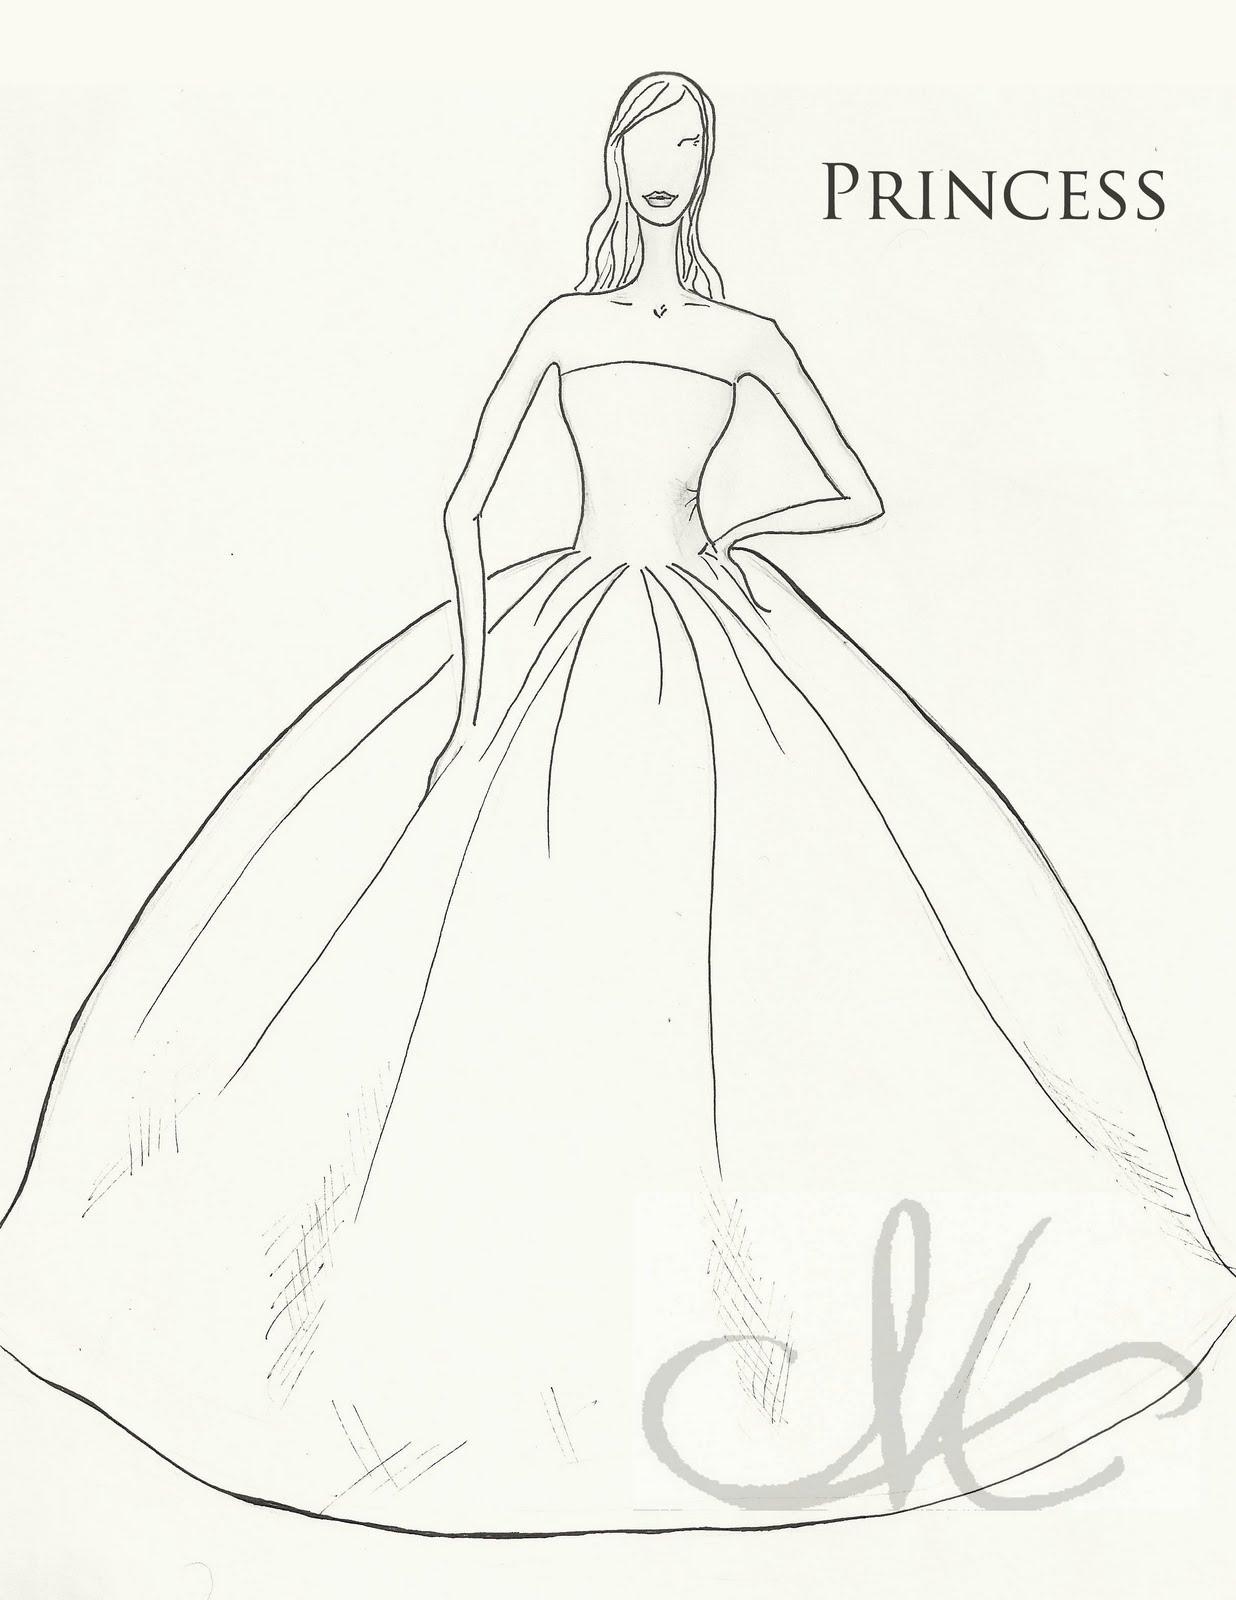 Imagen De Archivo Silueta De La Gente Image4572131 further How To Draw Simple Animals in addition Beautiful Alice And Smiling Cheshire Cat In Alice In Wonderland Coloring Page furthermore Dress Week Silhouettes besides Disney Coloring Aladdin Walt Disney. on disney castle silhouette image